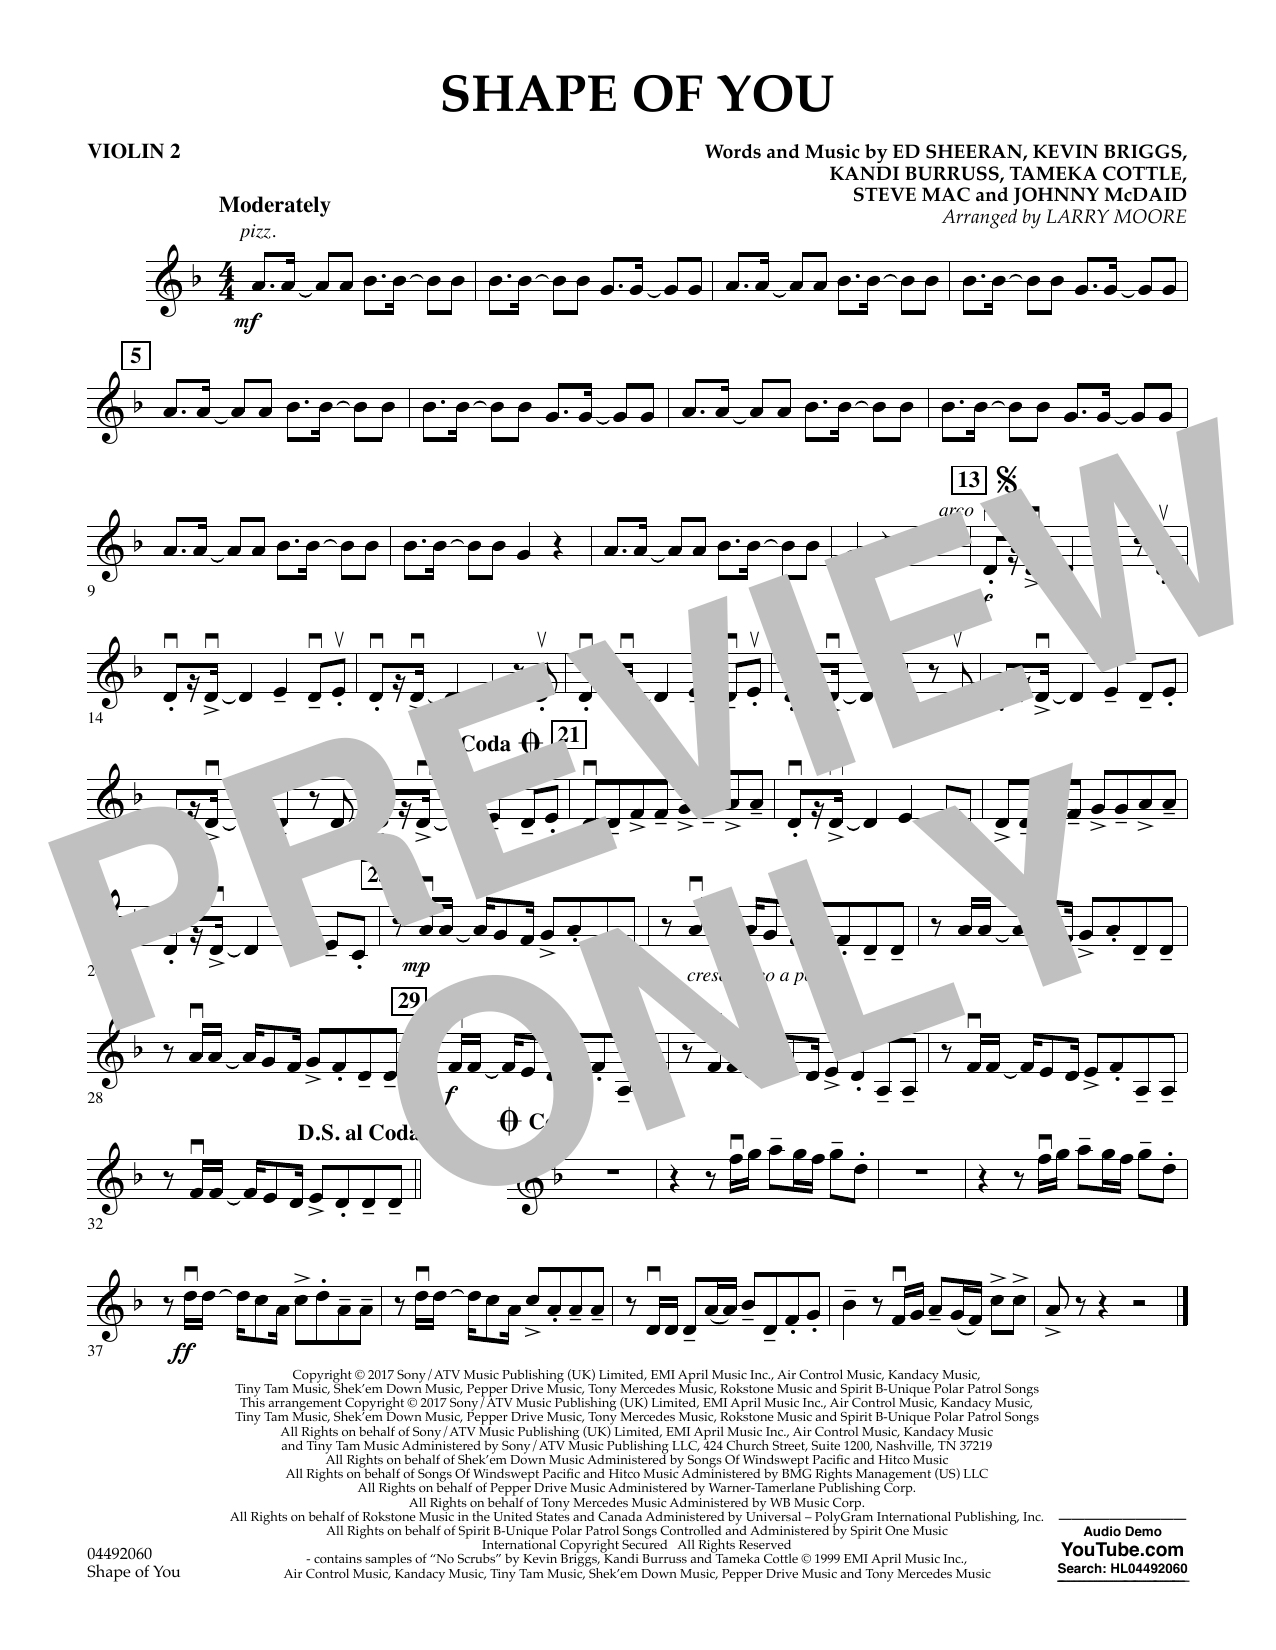 Larry Moore Shape of You - Violin 2 sheet music notes and chords. Download Printable PDF.